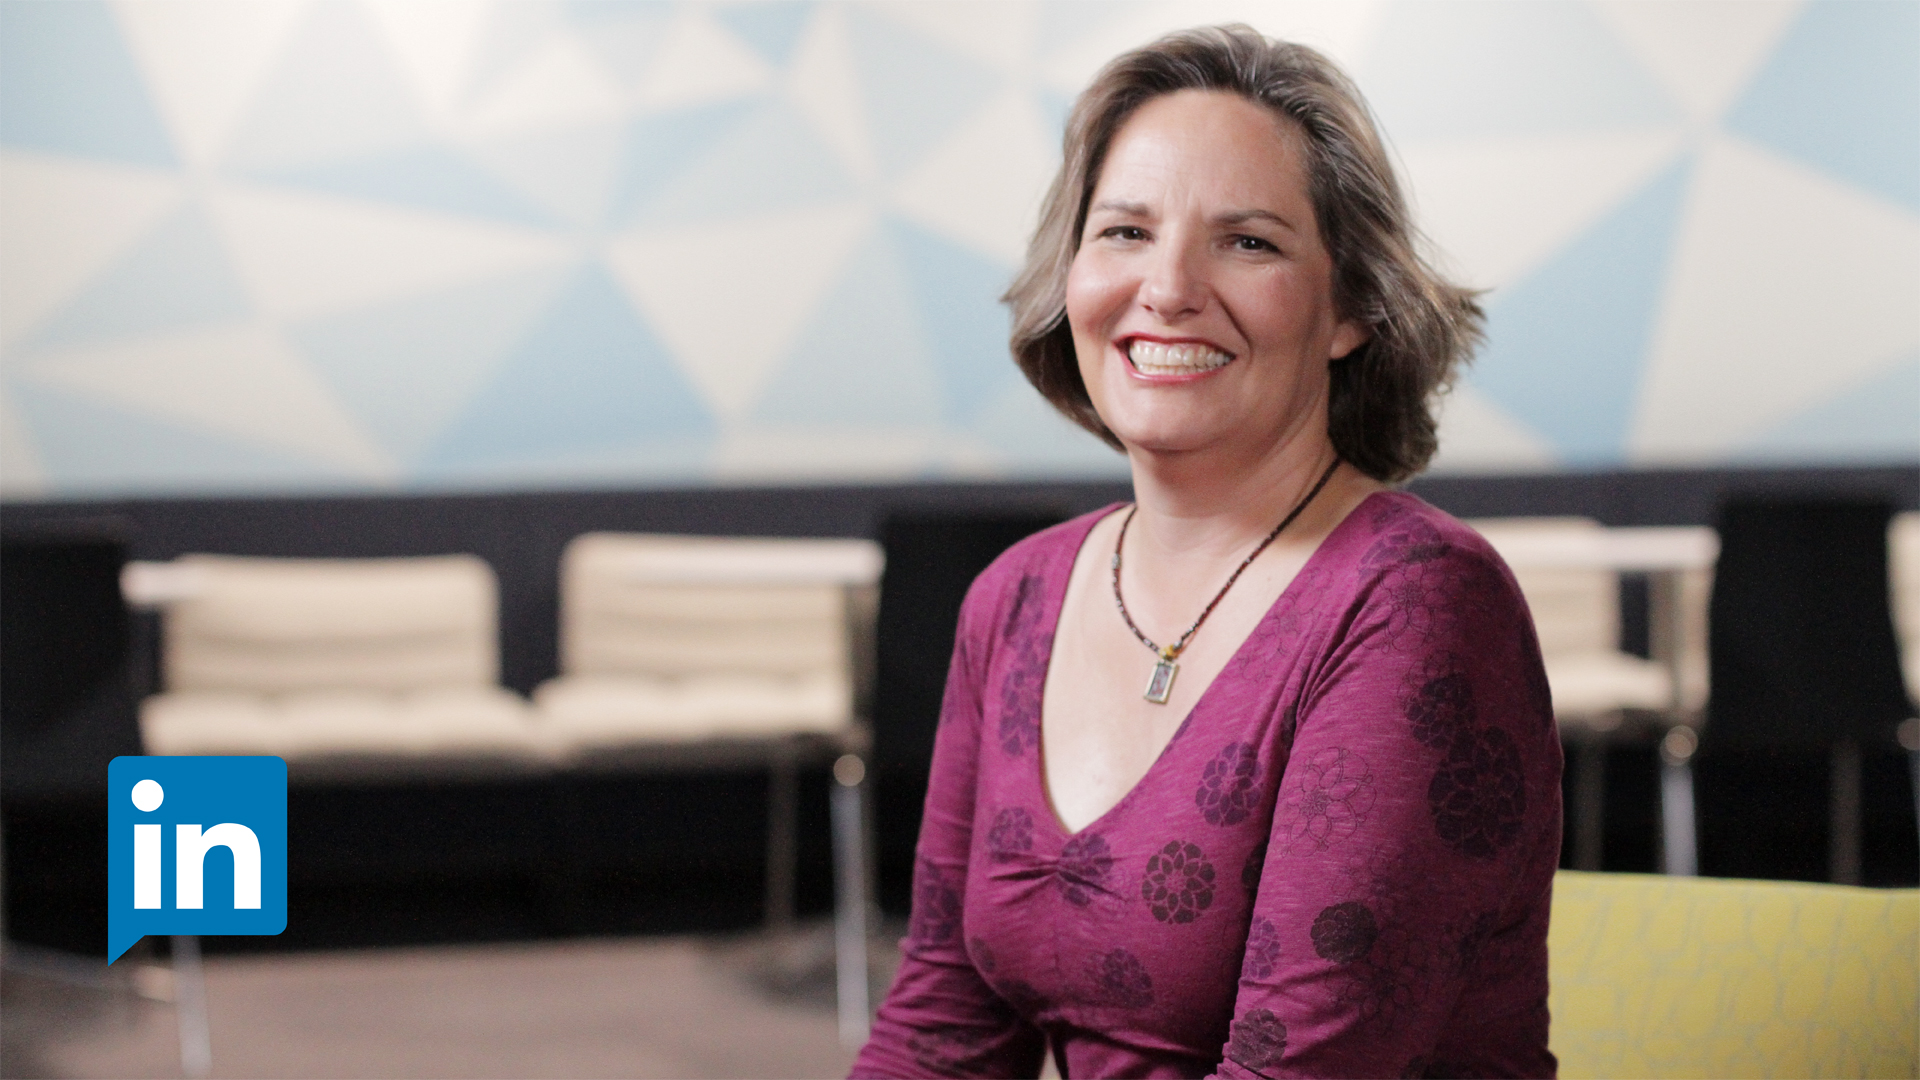 Welcome: Betsy Corcoran on Choosing the Right Technology for Your School